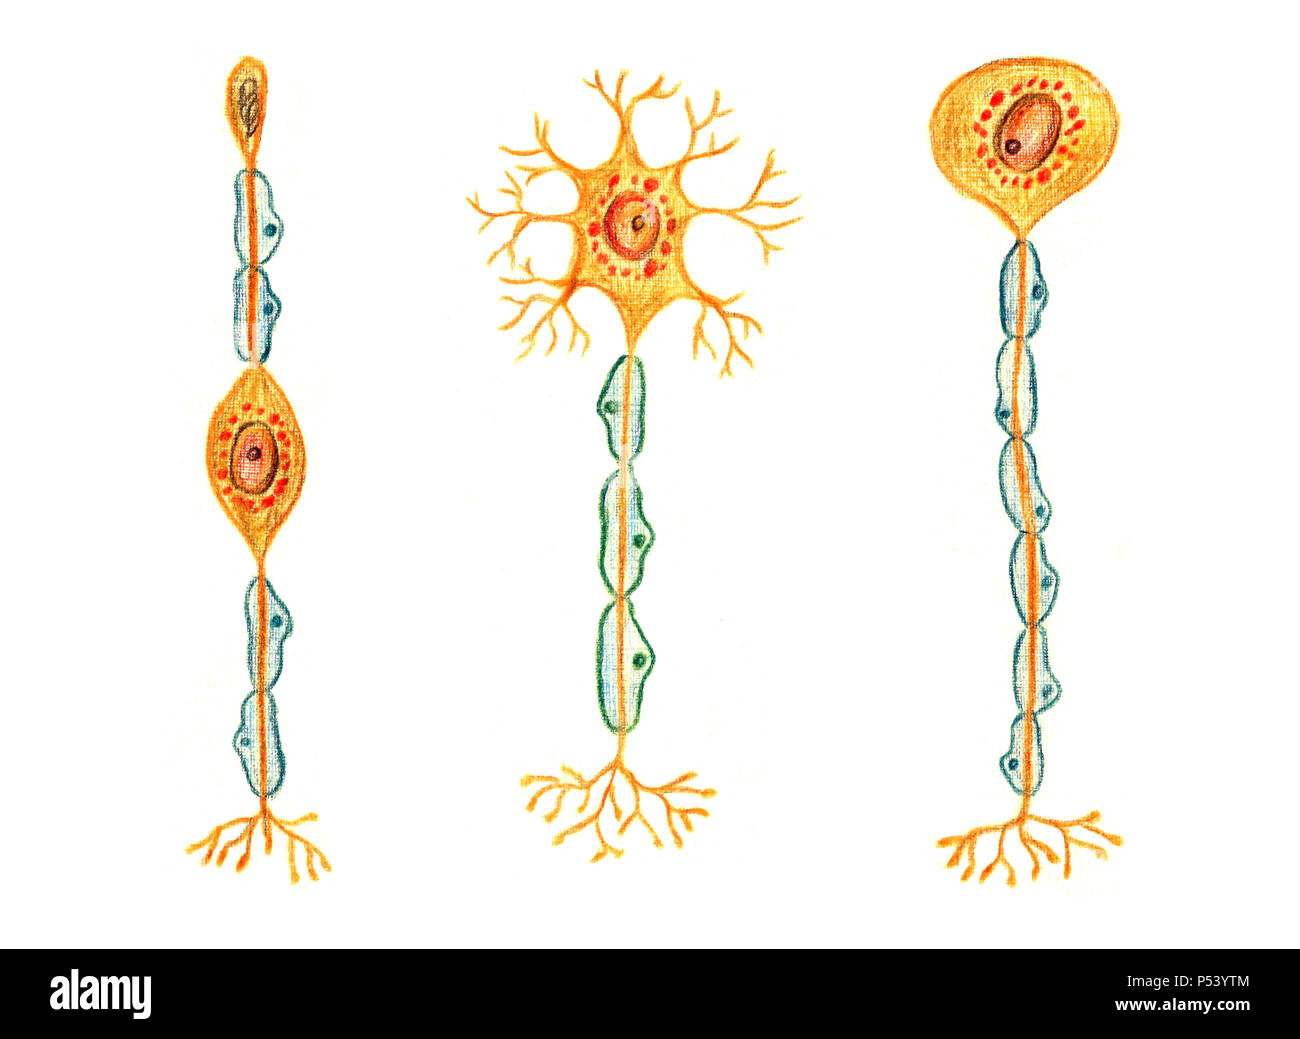 Unipolar Neuron Stock Photos & Unipolar Neuron Stock Images - Alamy